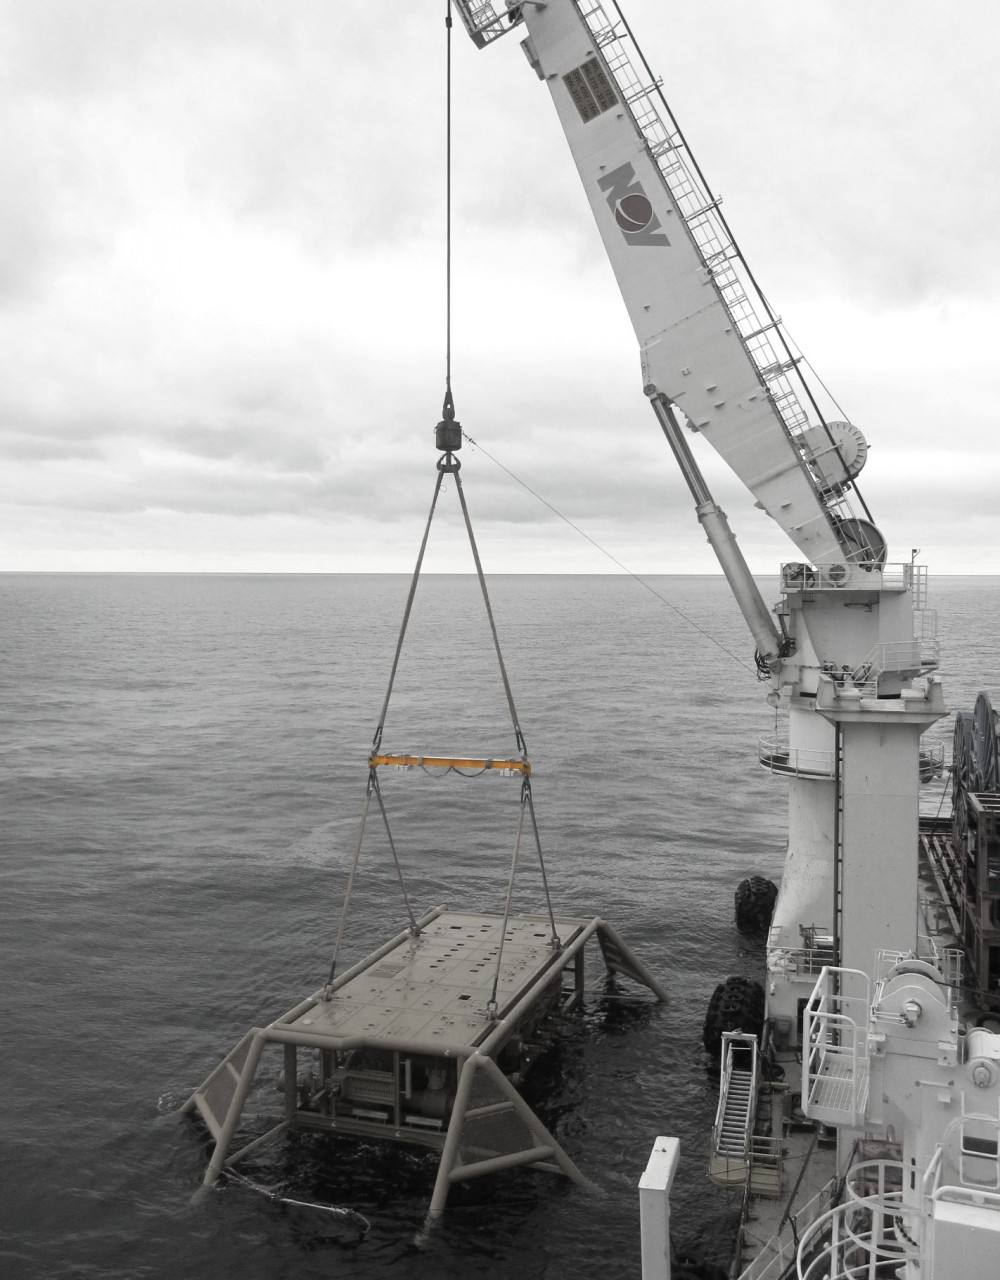 Modulift Refurbishes Subsea Beams for Oil and Gas Project